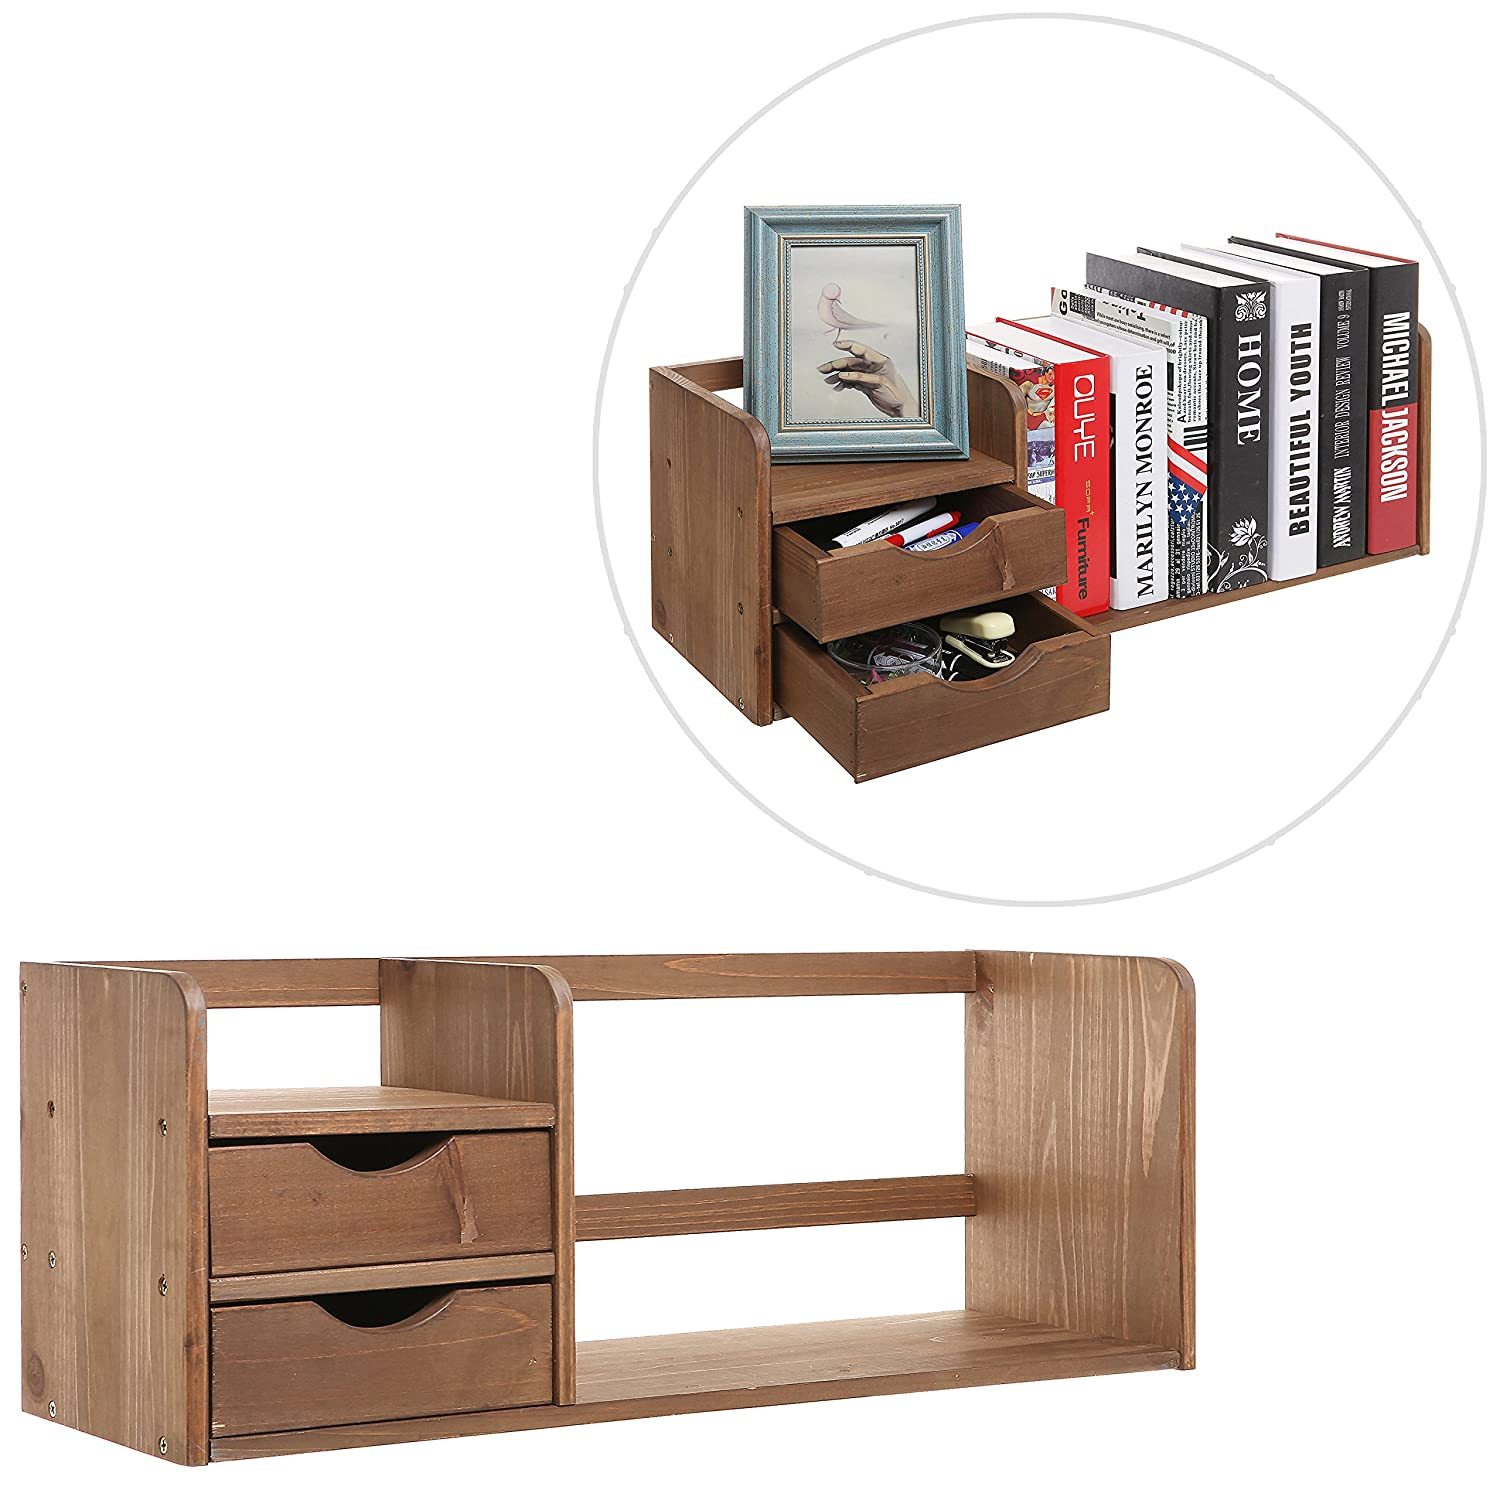 25 lastest decorative office storage yvotubecom for Decorative office storage